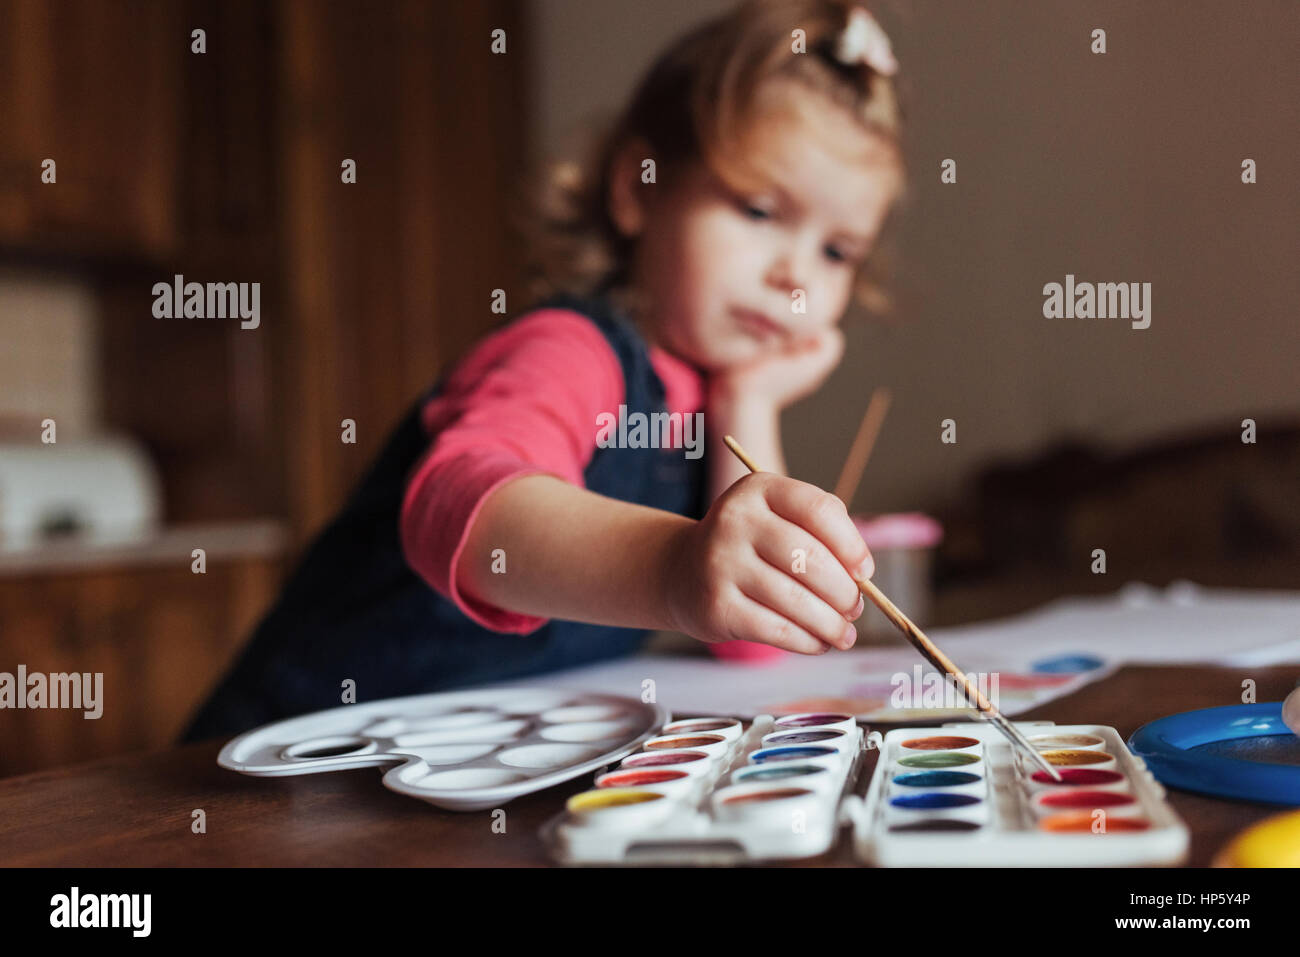 Cute little girl, adorable bambin, peinture avec wate Photo Stock